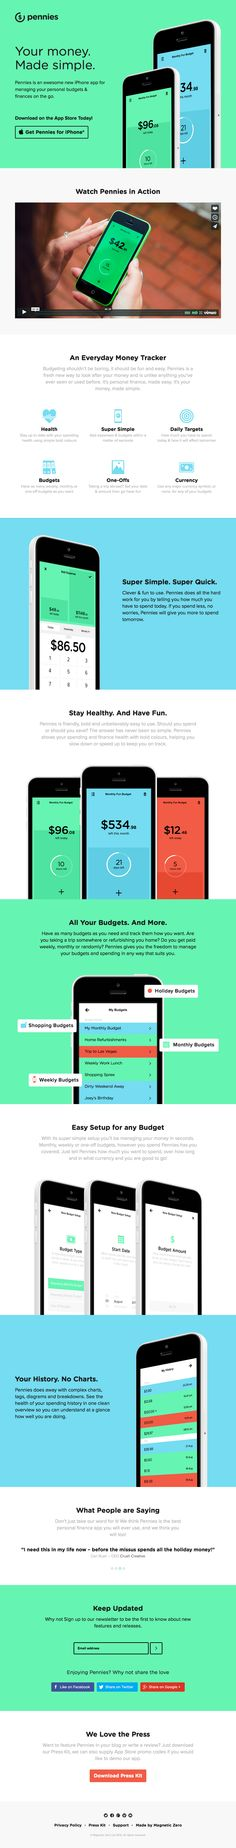 Pennies for iPhone